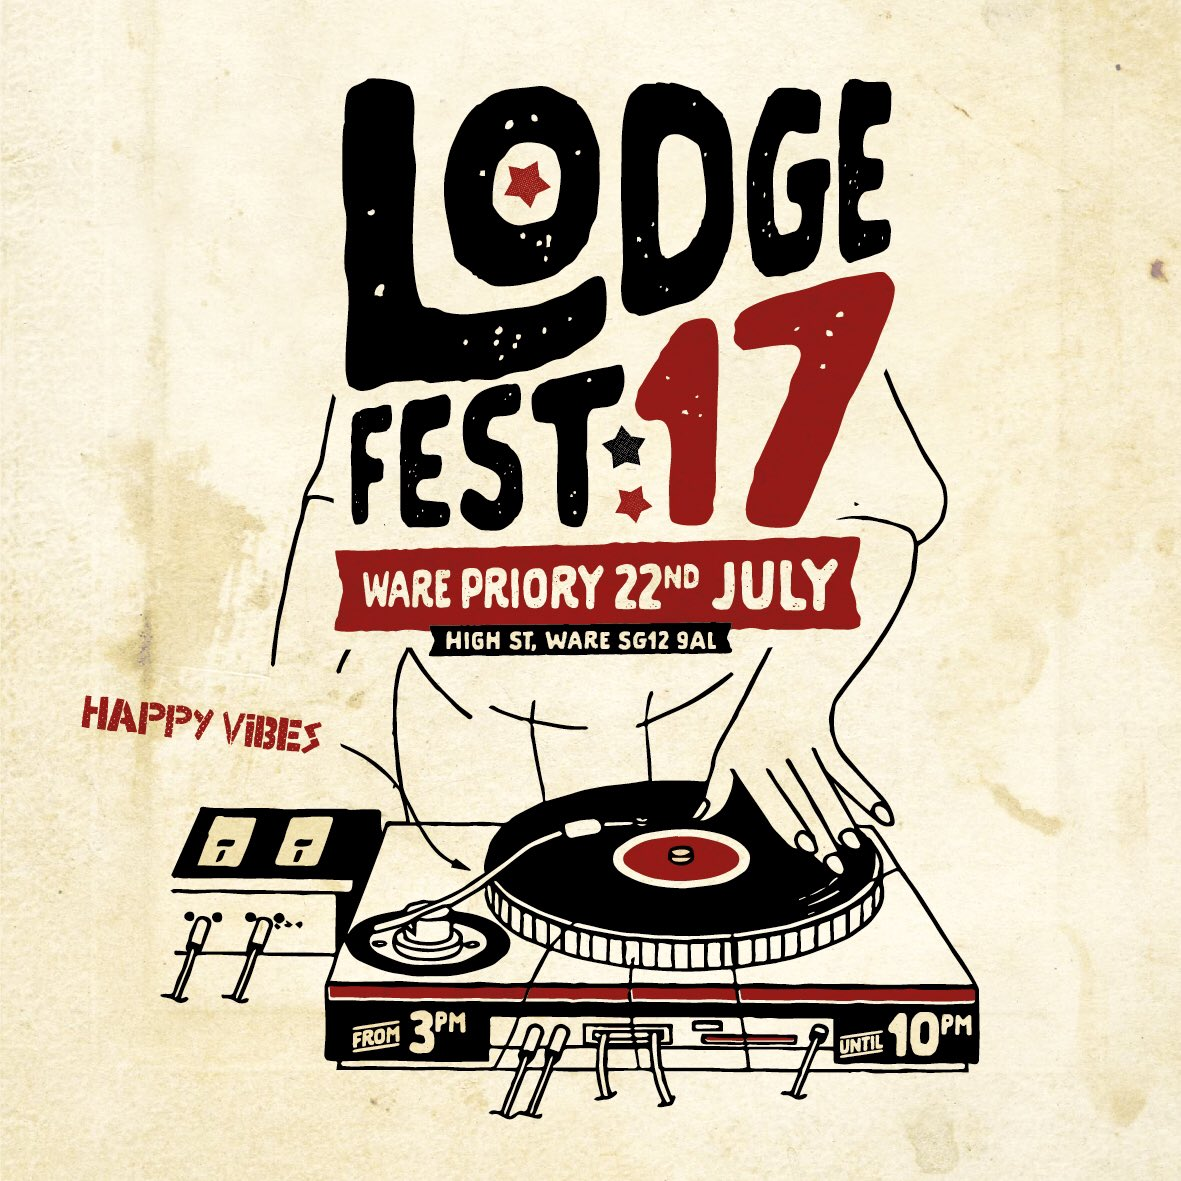 LodgeFest is coming! Find out all the deets and how to get tix at  http://www. Lodgefest.com  &nbsp;   #ware #hertford #lodgefest #dancemusic #festival <br>http://pic.twitter.com/Guqp13KZ3S